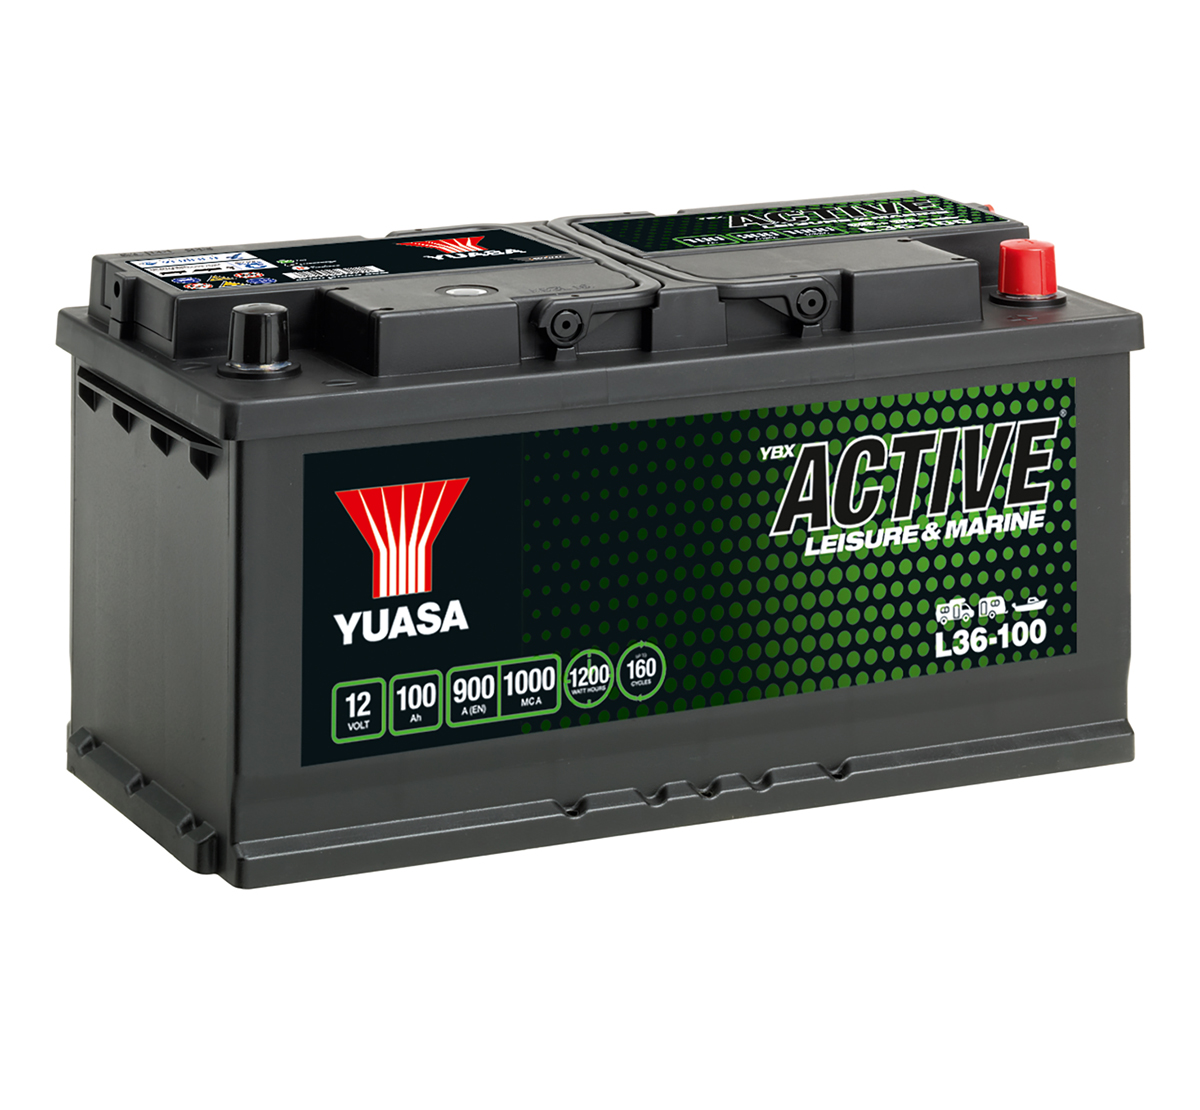 Yuasa YBX Active L36-100 Leisure Battery